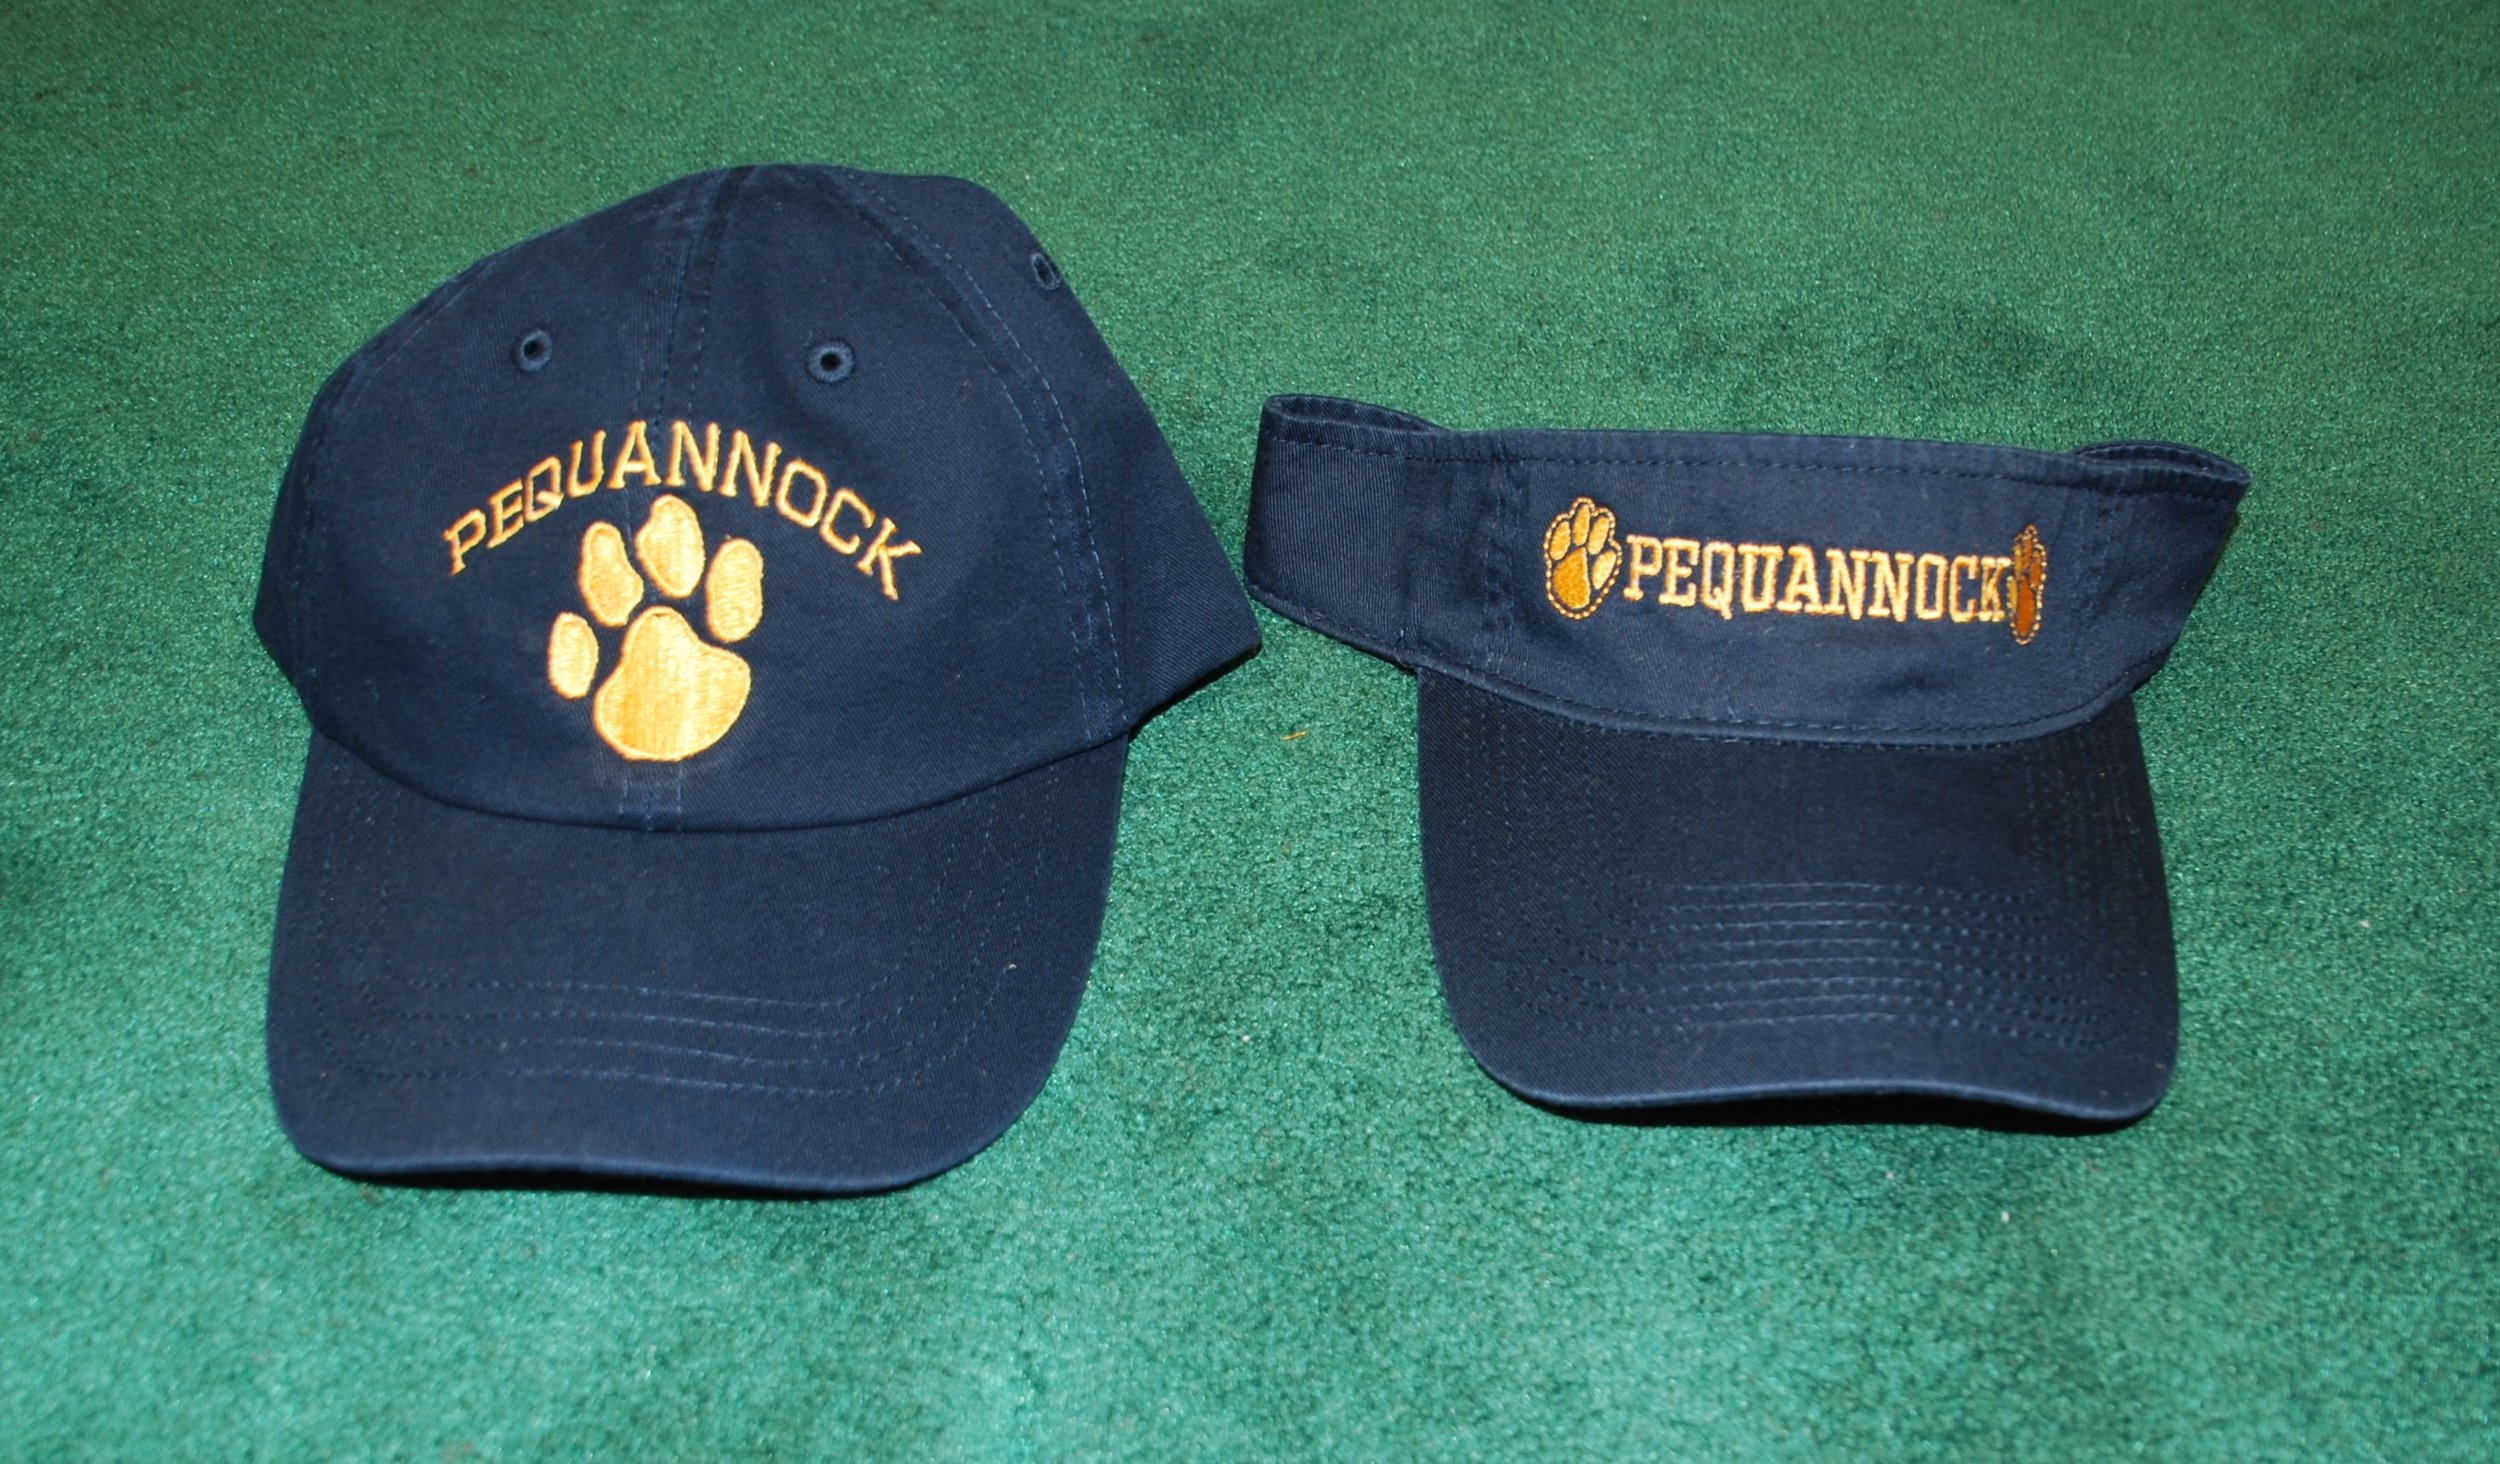 Pequannock Panthers embroidered cap and visor.